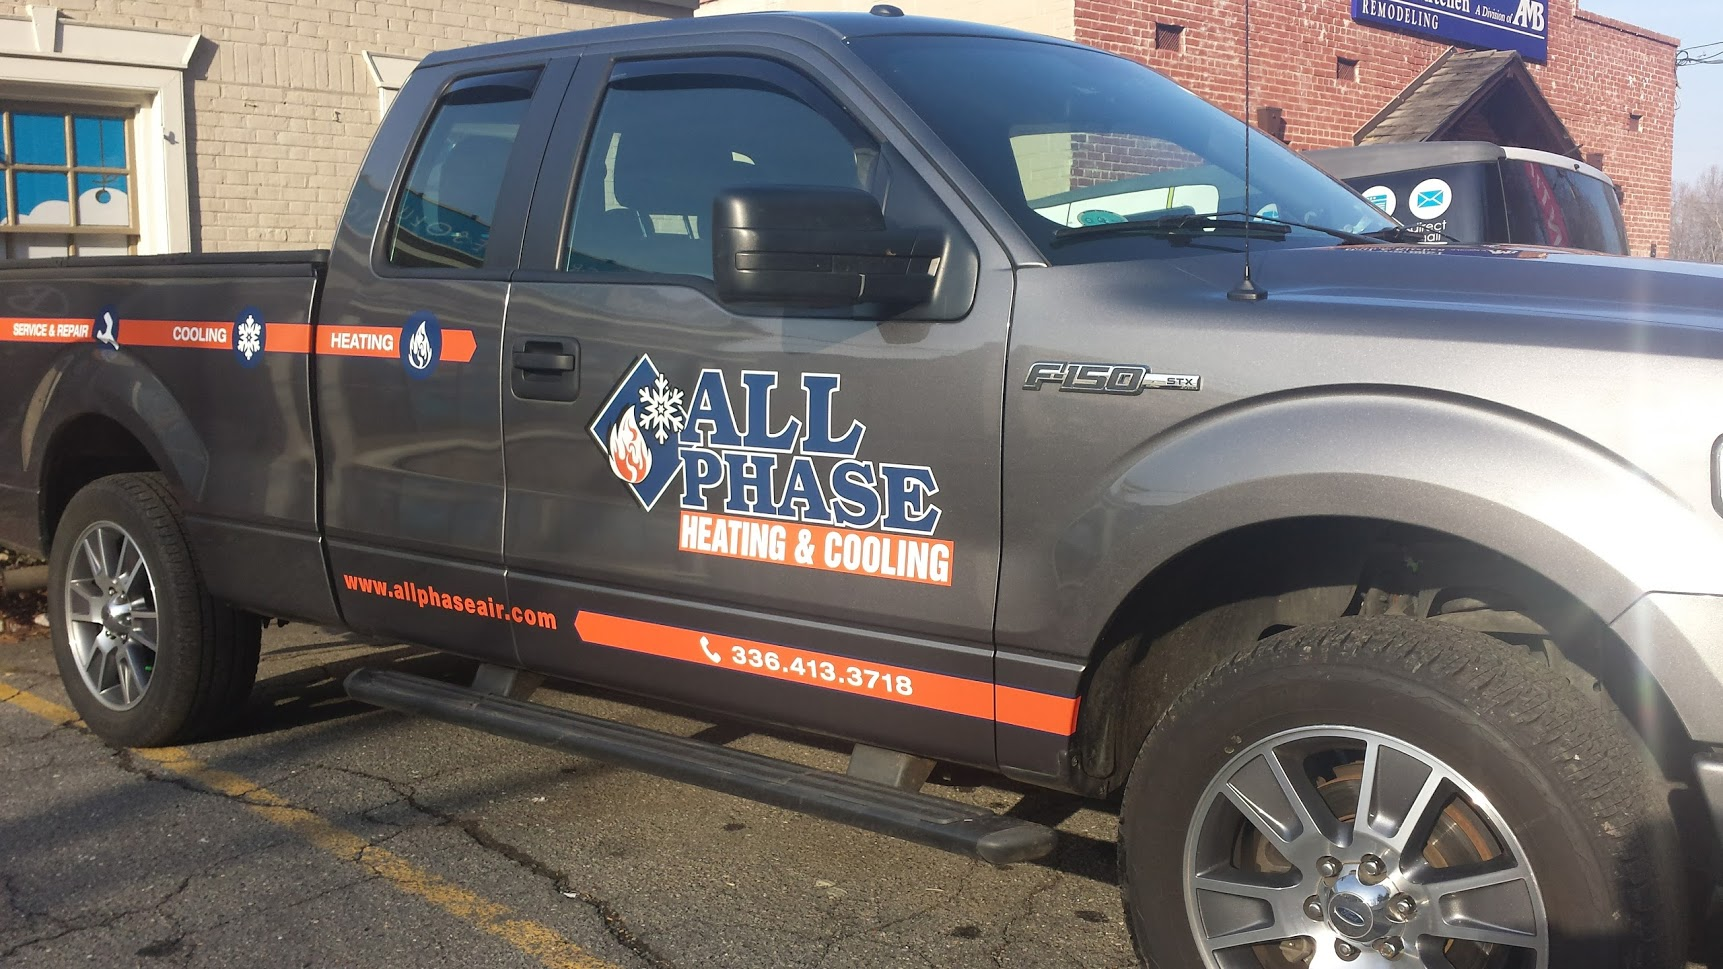 allphase_heating_cooling_hvac_truck_left_side_view_vehicle_wrap